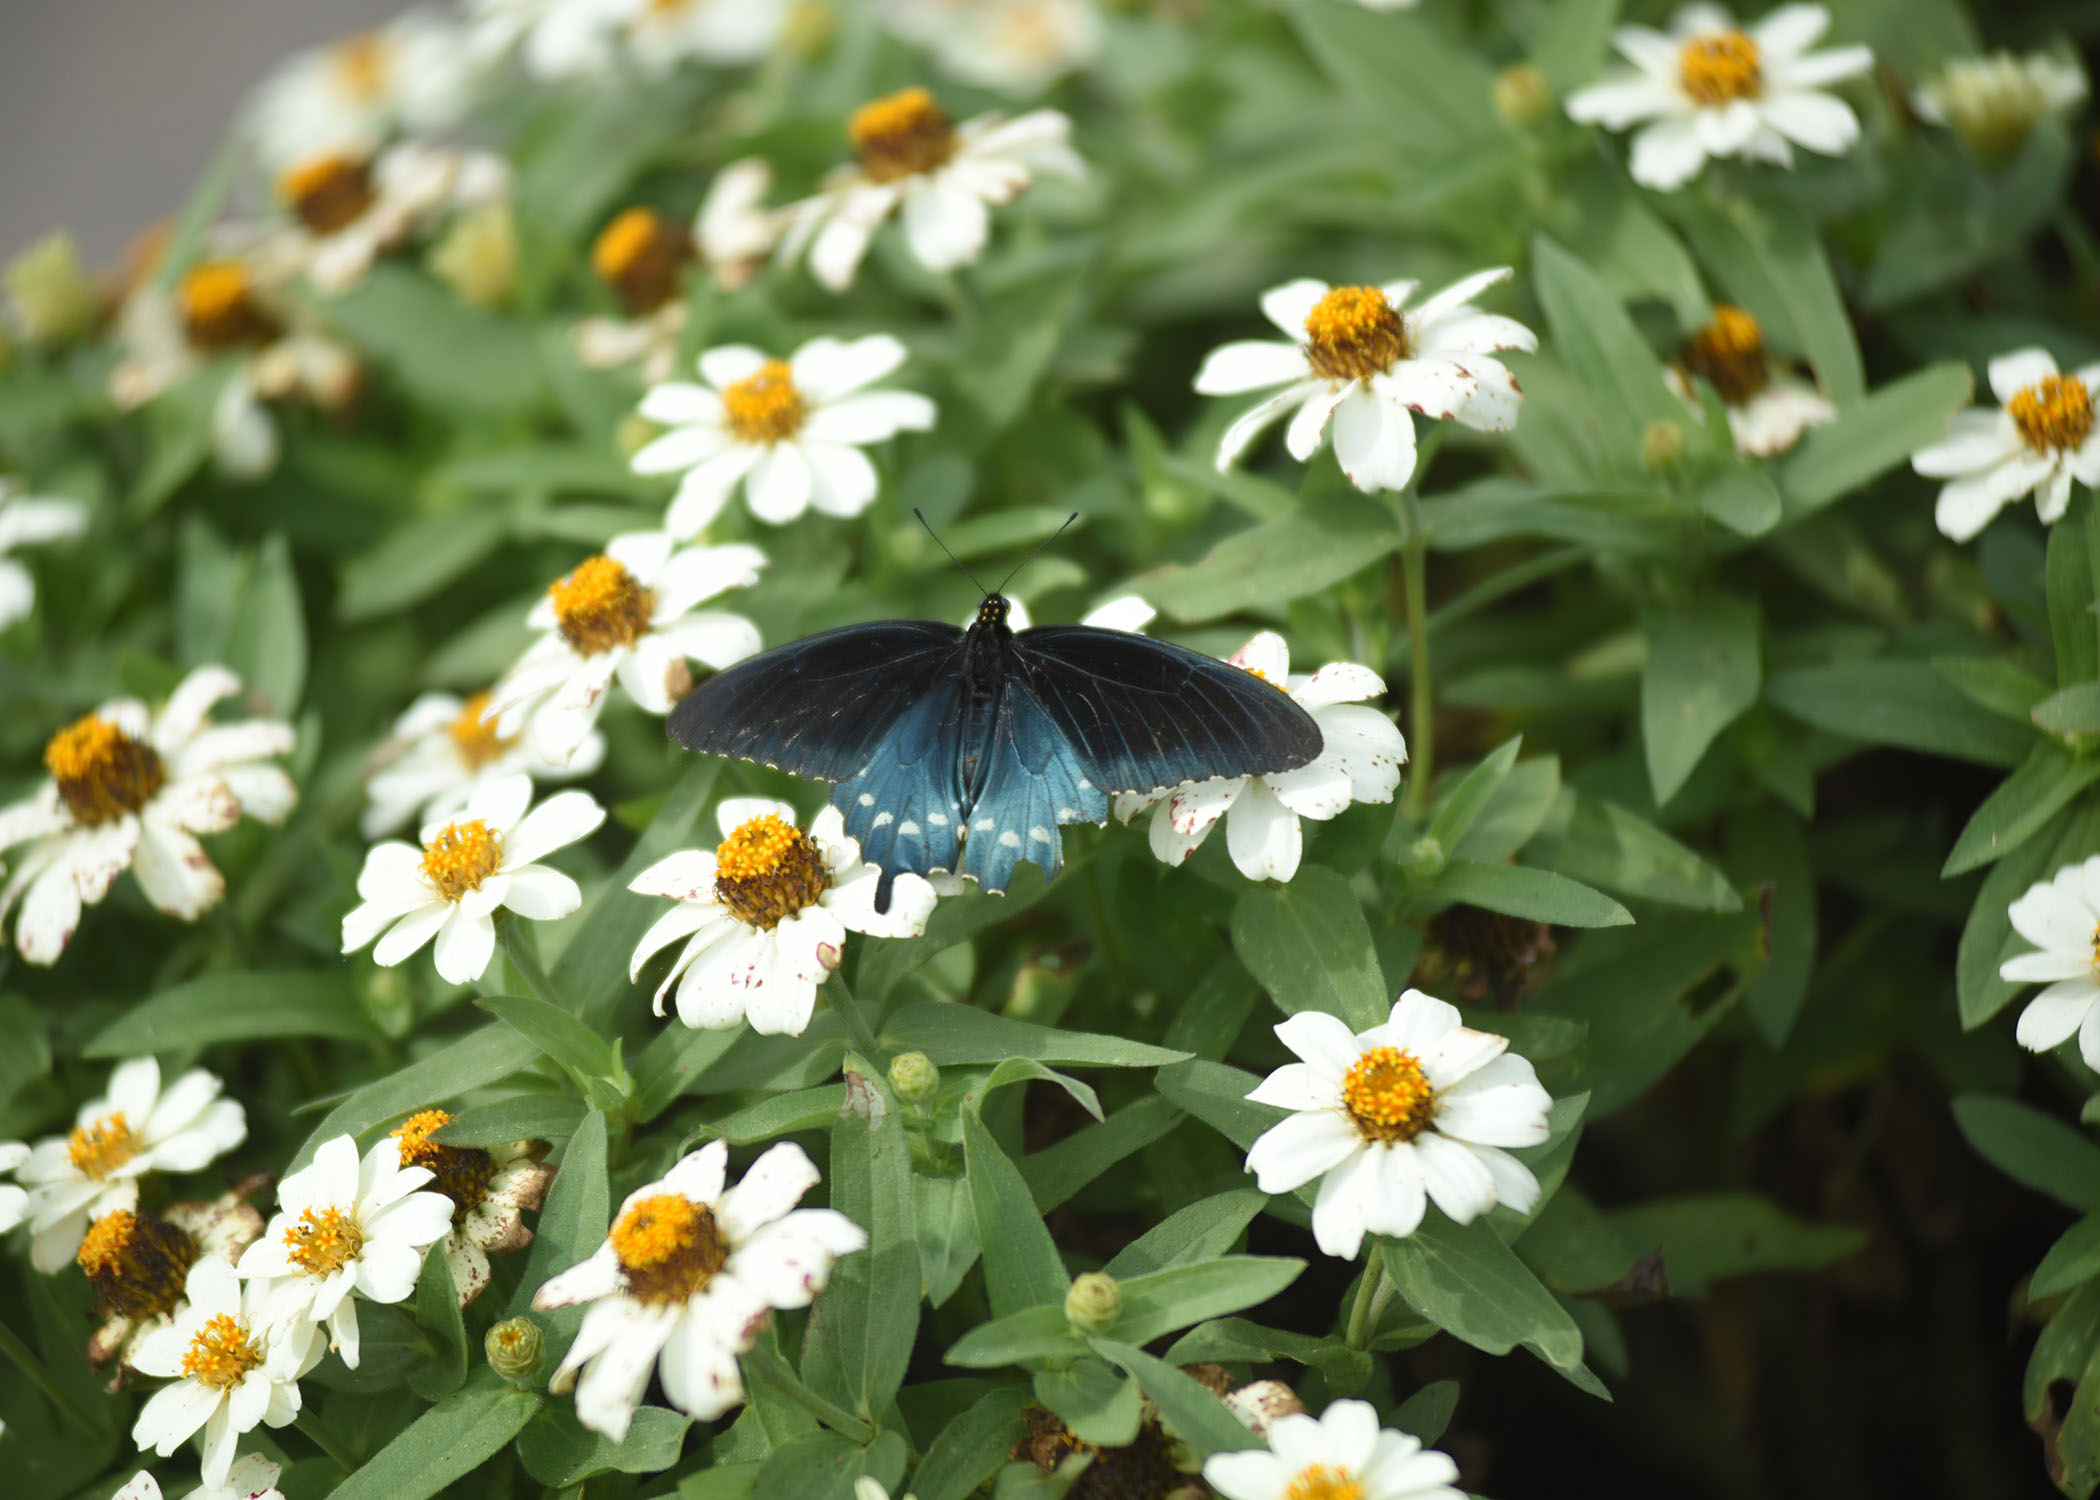 A Pipevine butterfly visits the pollinator garden at Cheatham Lake in Ashland City, Tenn., Sept. 30, 2017. (Photo by Lee Roberts)